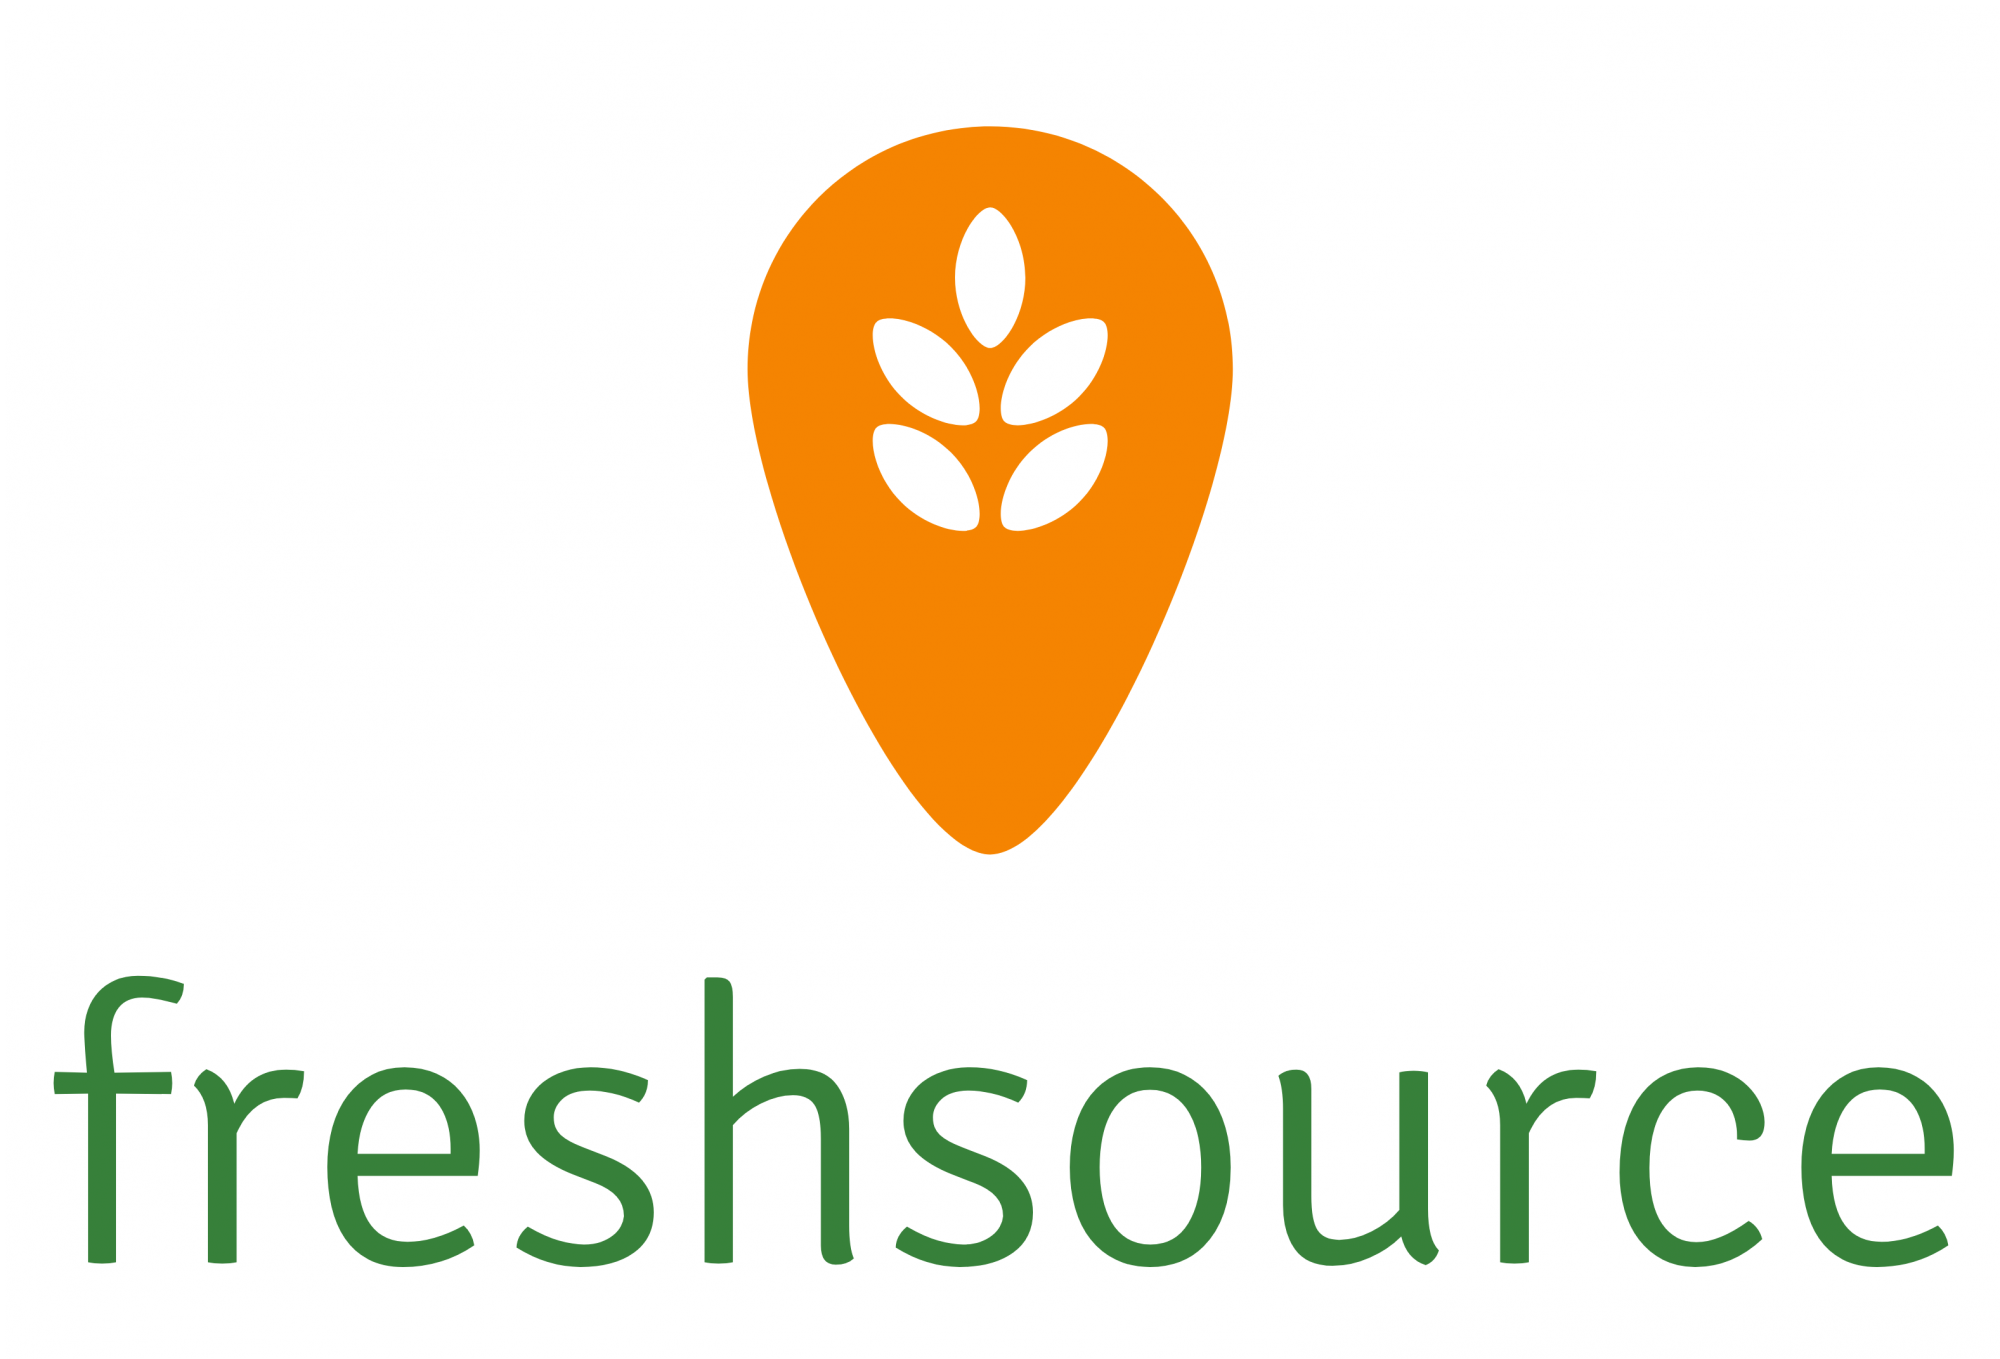 FreshSource